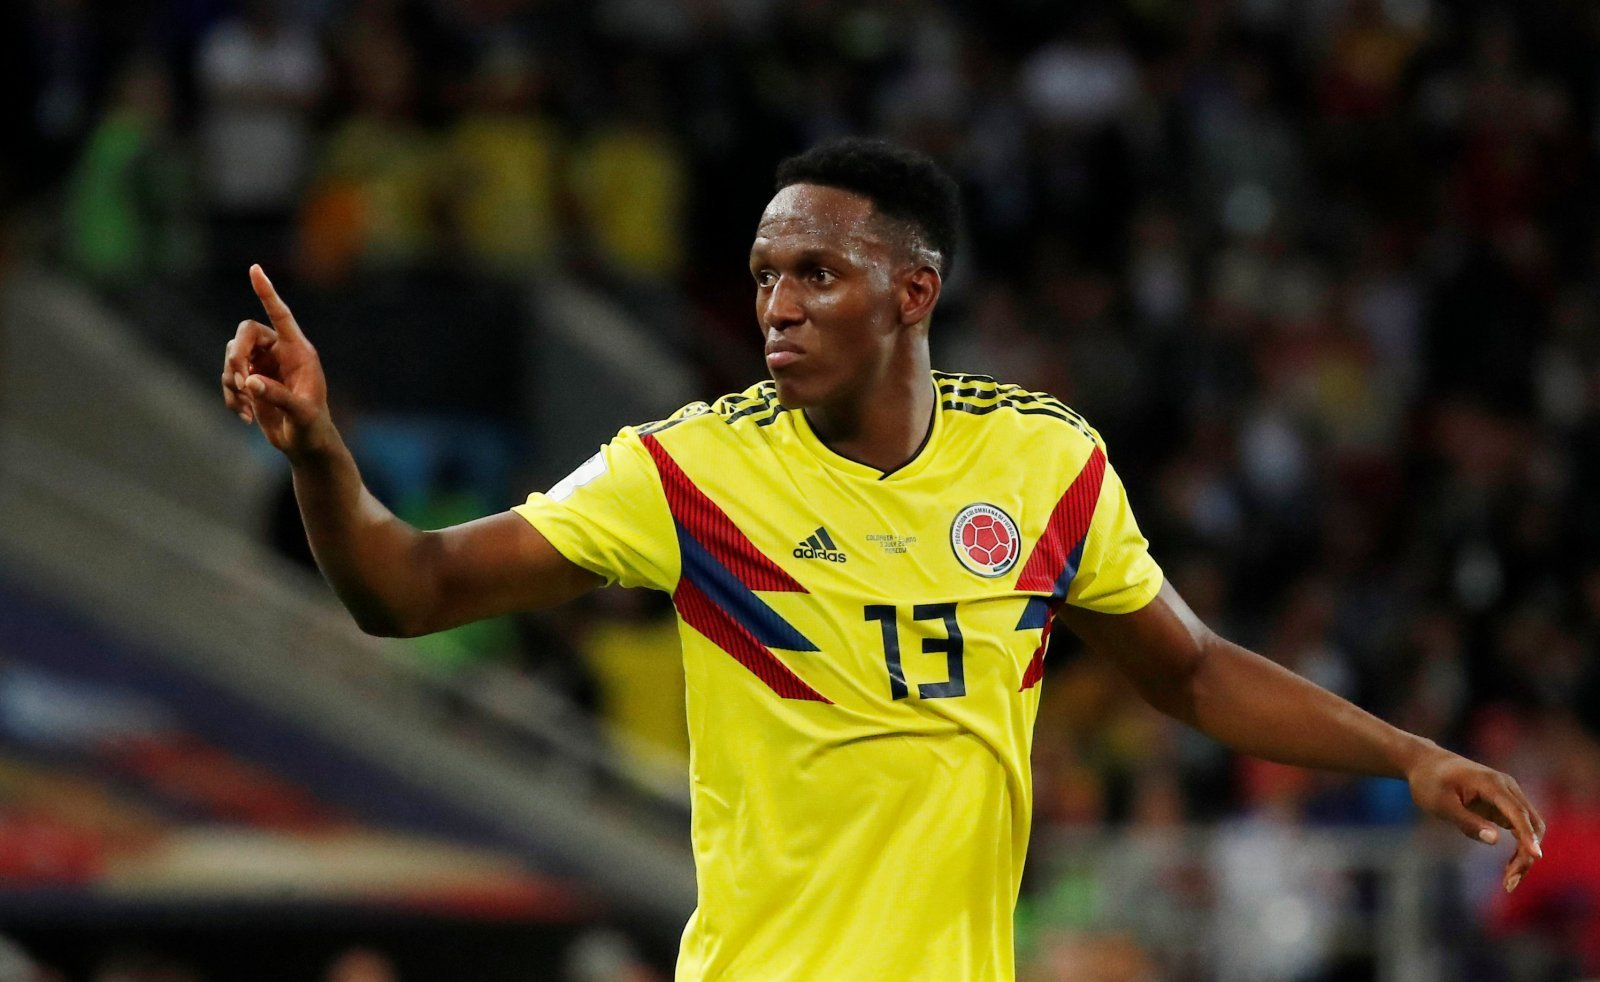 Yerry Mina would be the perfect replacement for Harry Maguire at Leicester